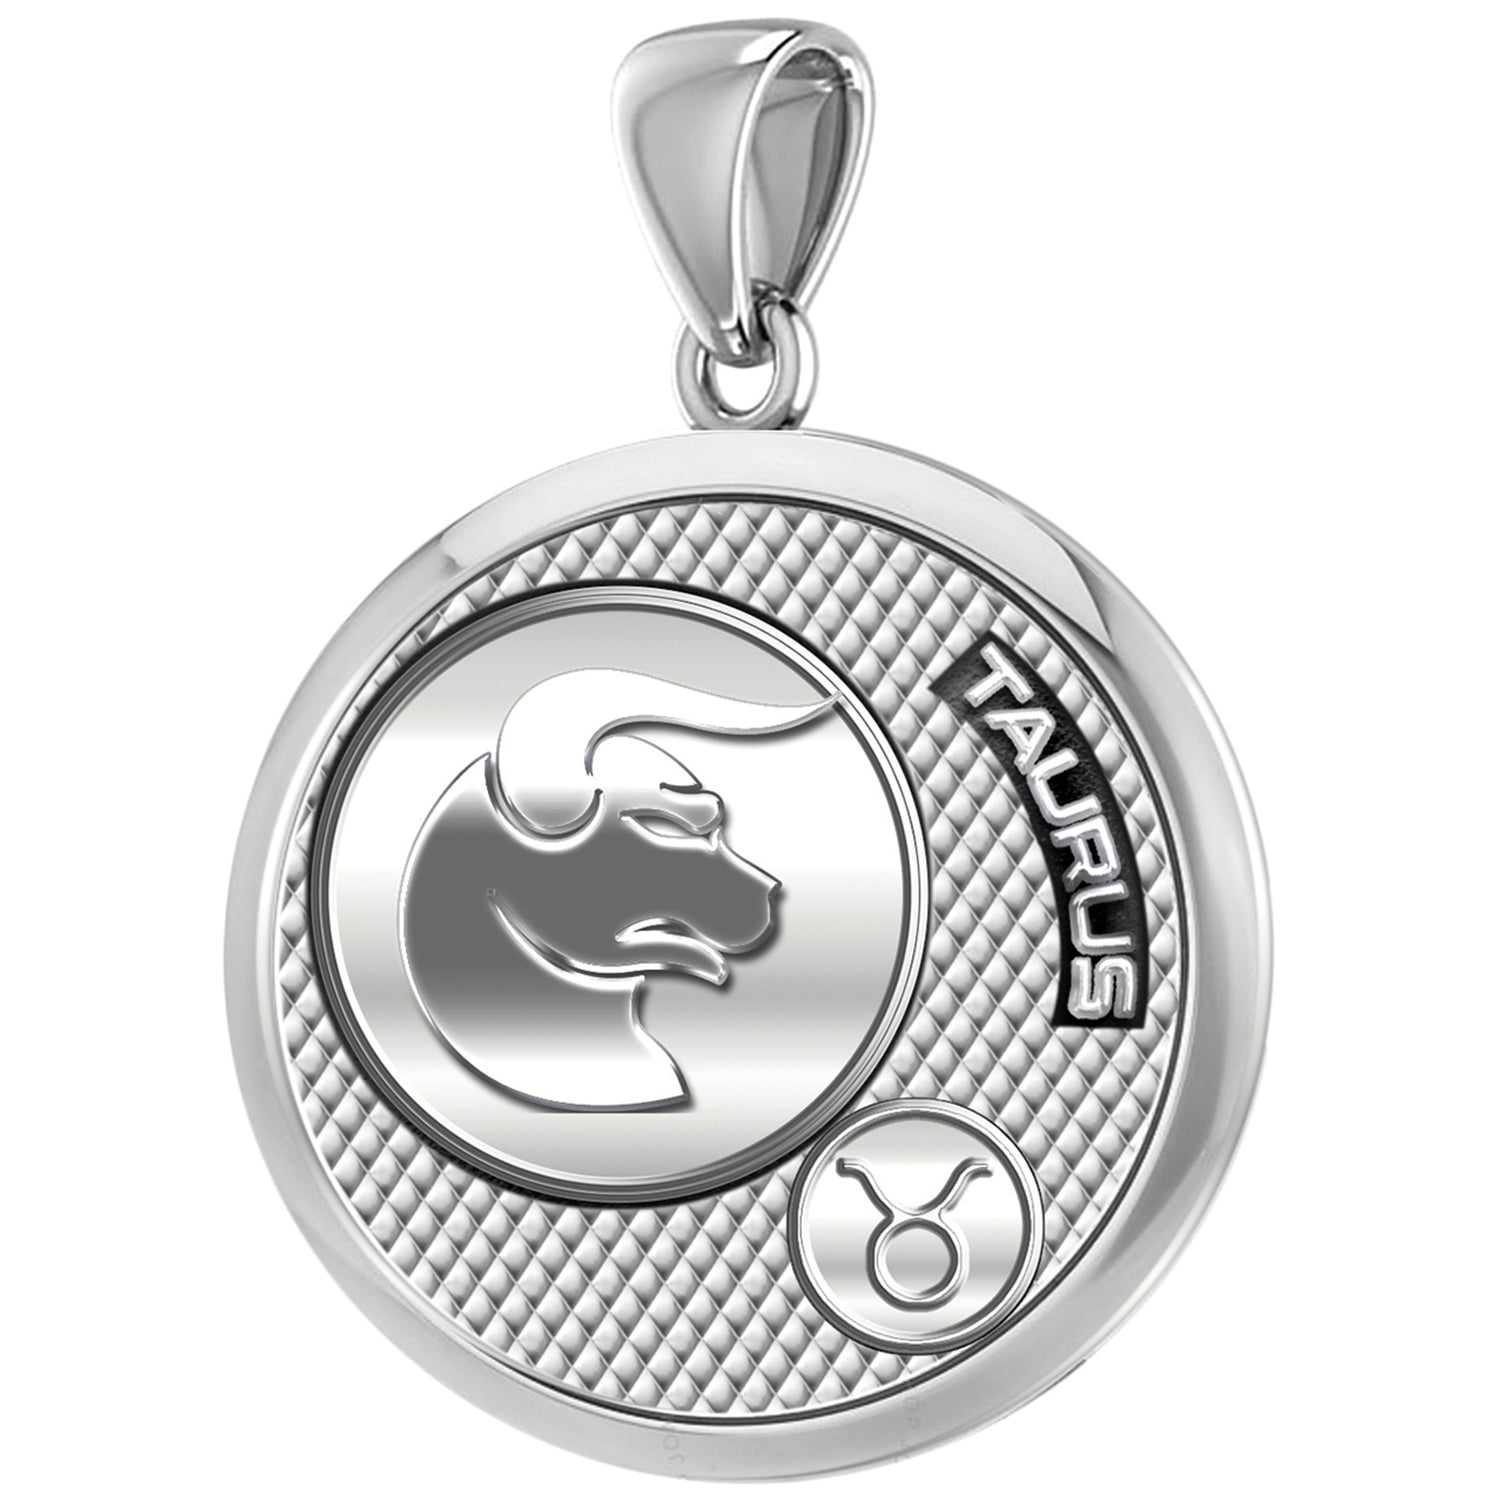 Taurus Necklace For Men In 925 Silver - Pendant Only